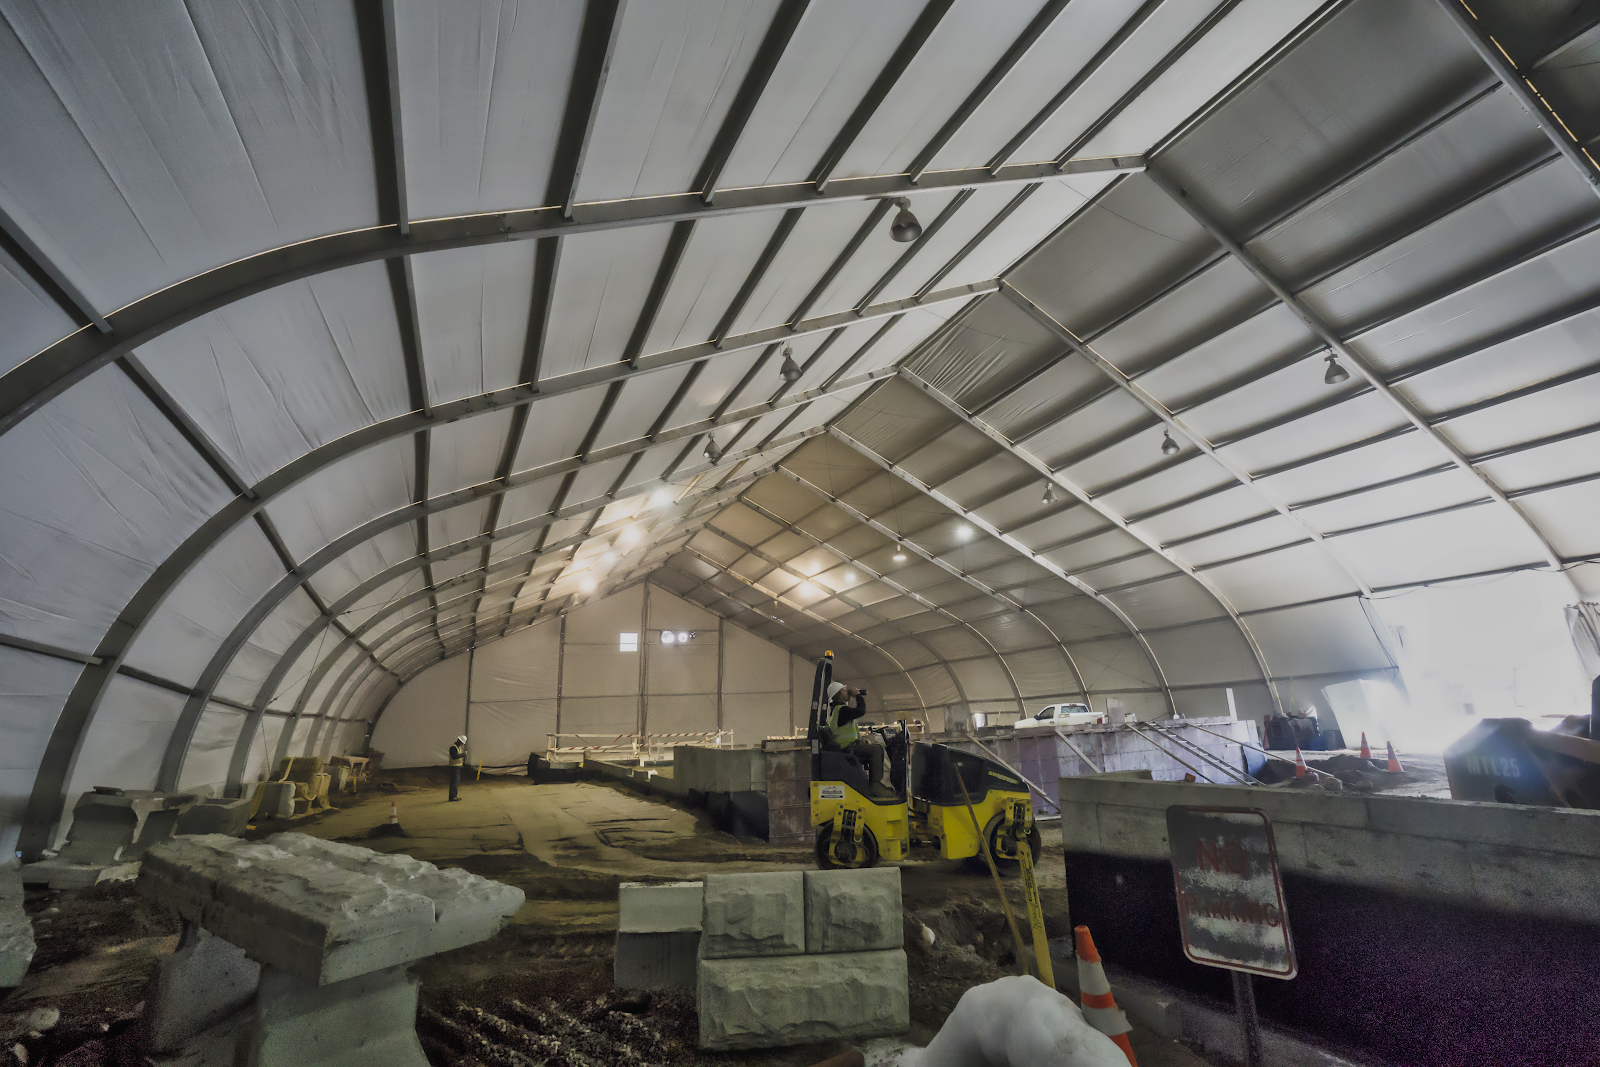 interior of construction or infrastructure project temporary fabric building high ceiling aluminum frame with worker and cement and other construction materials inside